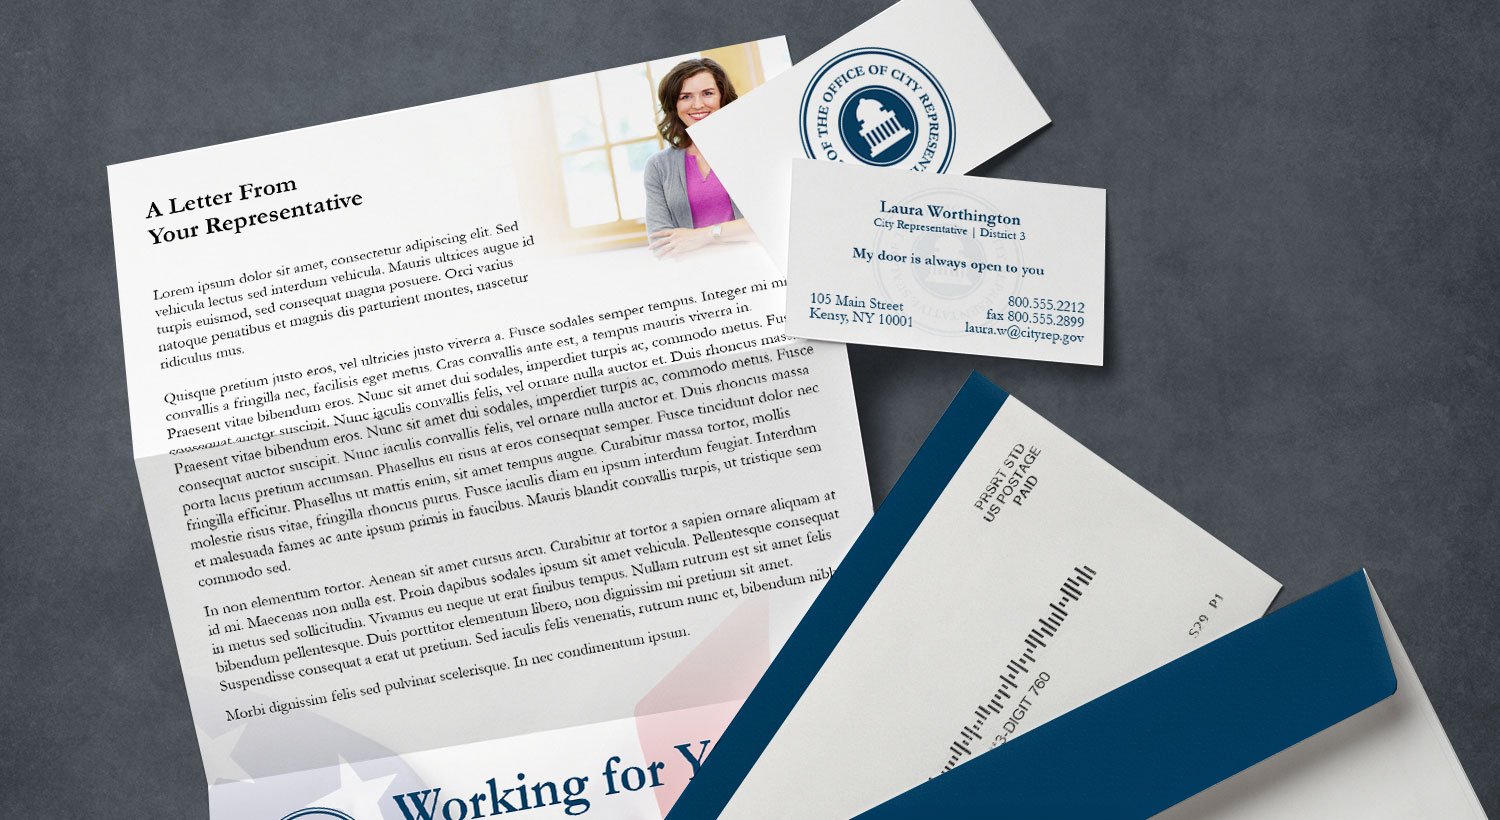 30 Quick Tips for Effective Business Card Marketing